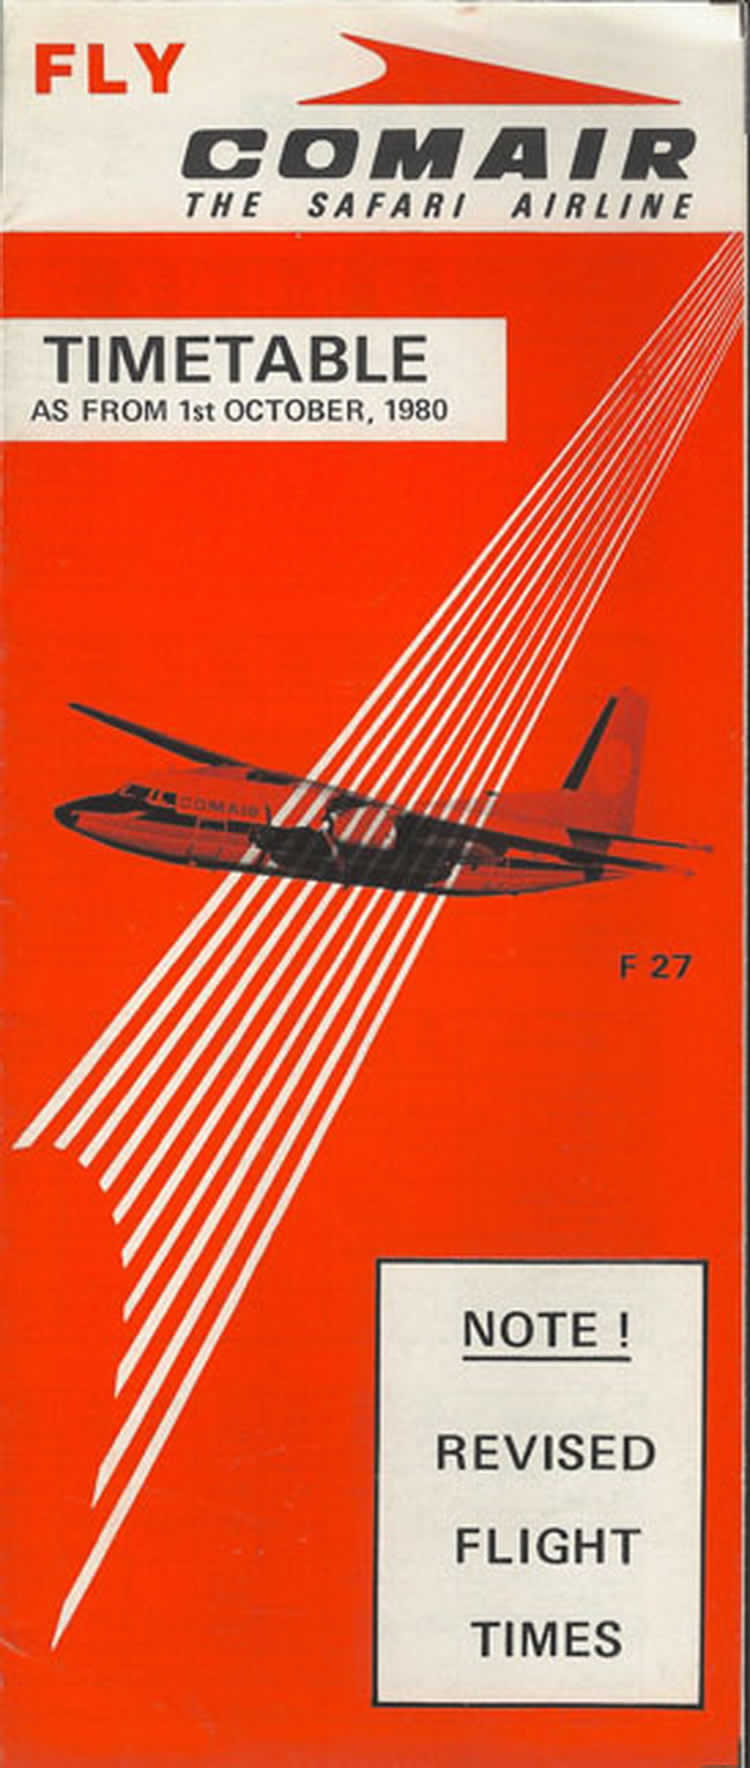 vintage airline timetable for comair